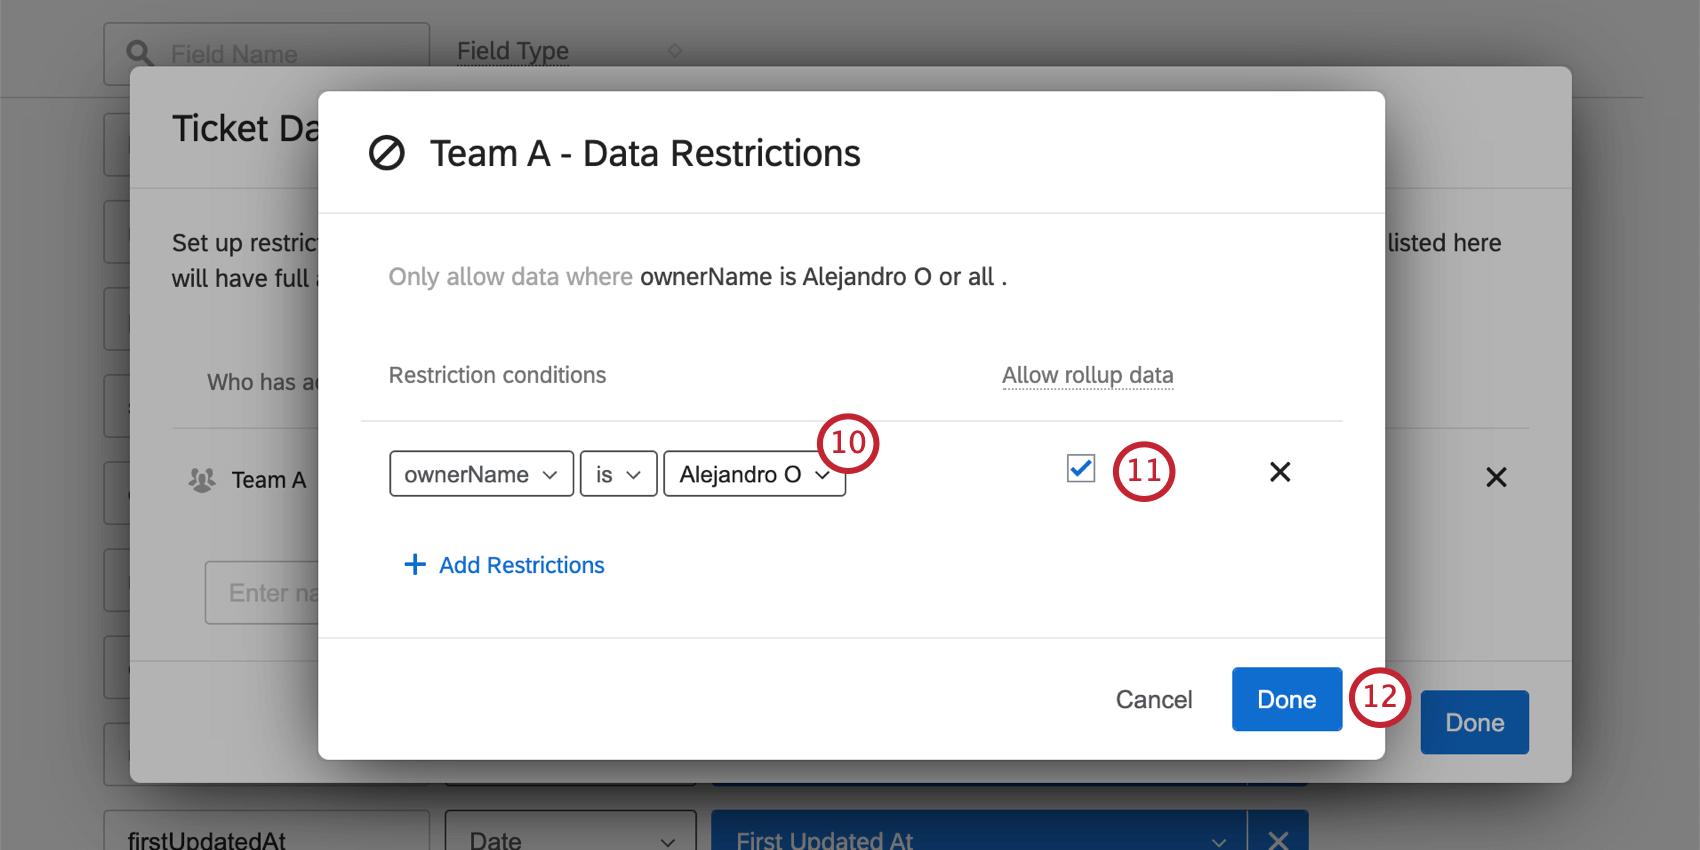 Allow rollup data is selected